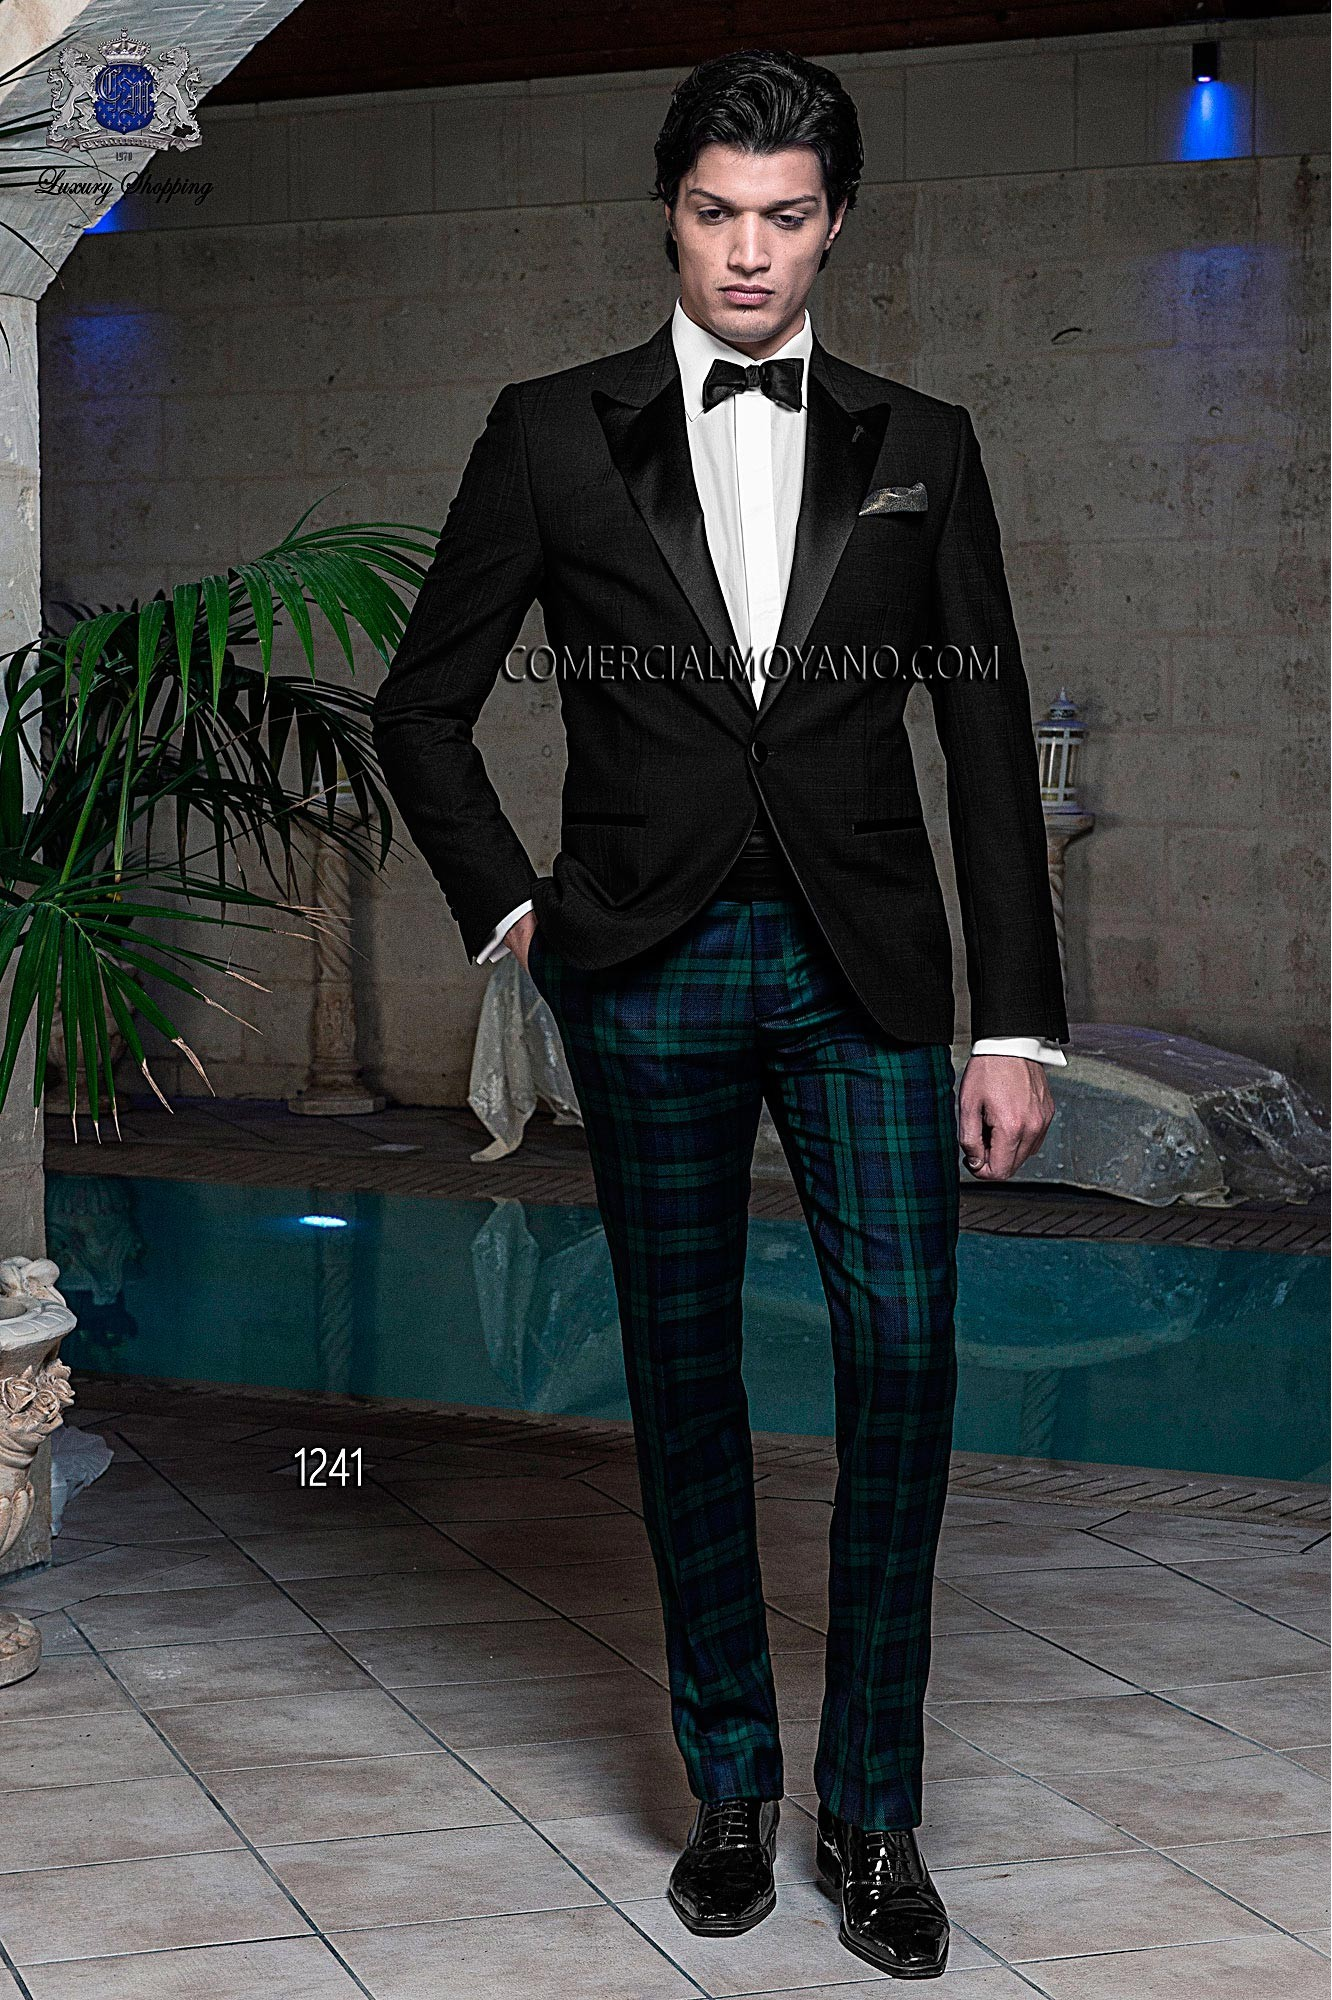 Black Tie black men wedding suit model 1241 Ottavio Nuccio Gala